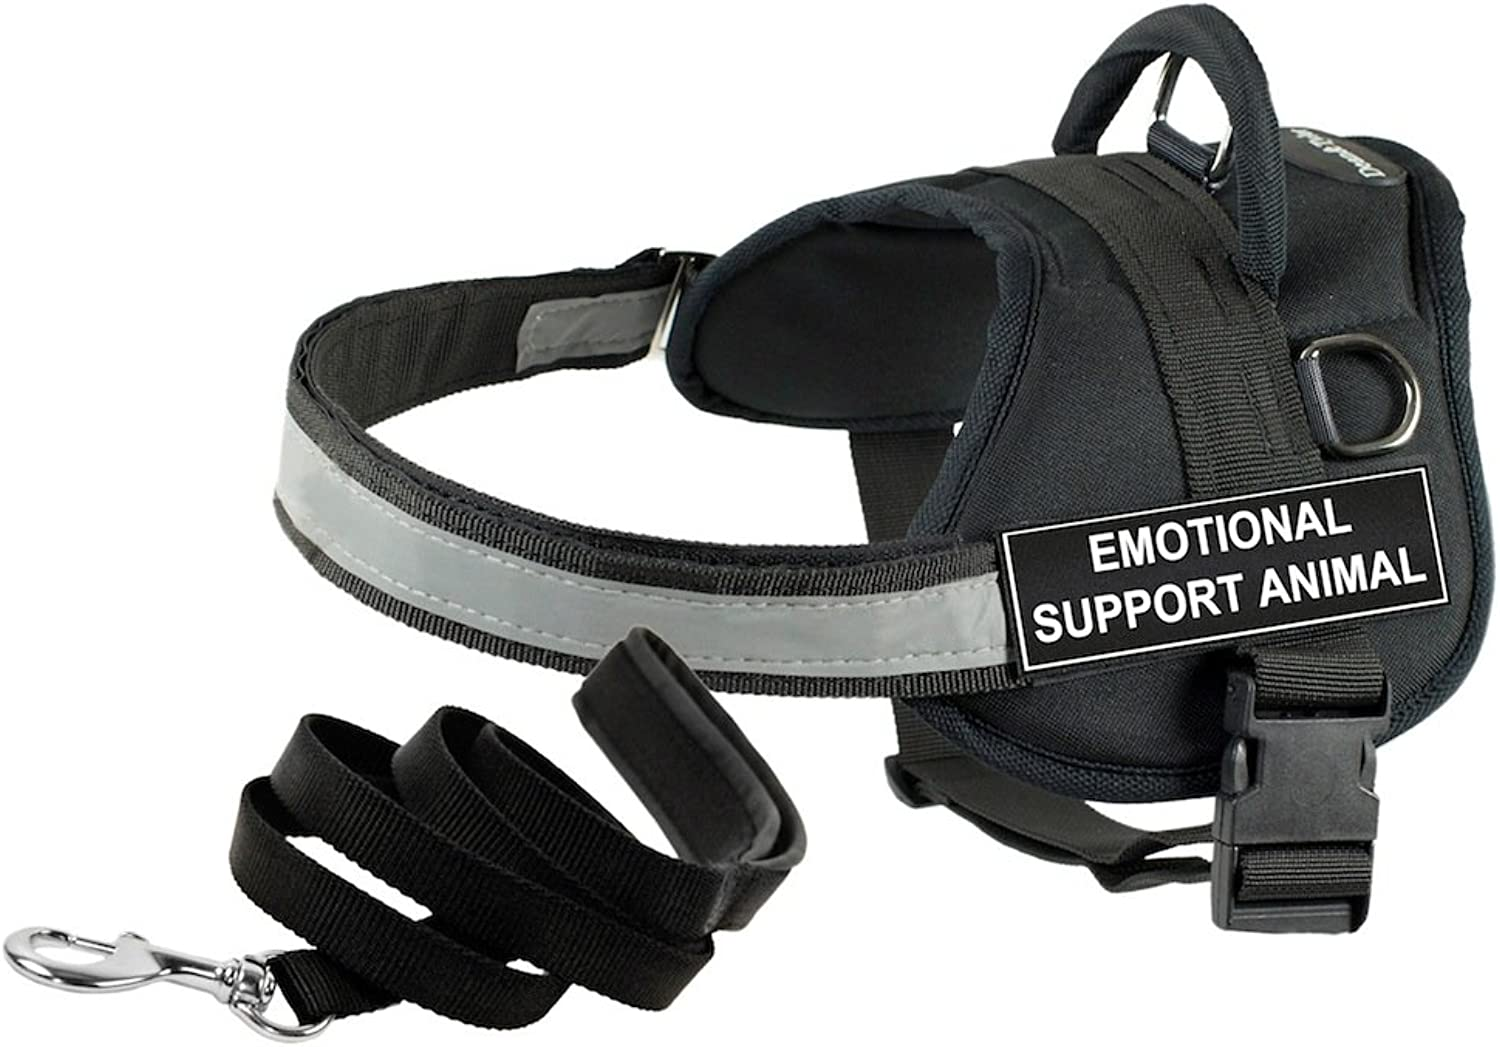 Dean and Tyler Bundle  One DT Works  Harness, Emotional Support Animal, XSmall (21   26 ) + One Padded Puppy  Leash, 6 FT Stainless Snap  Black